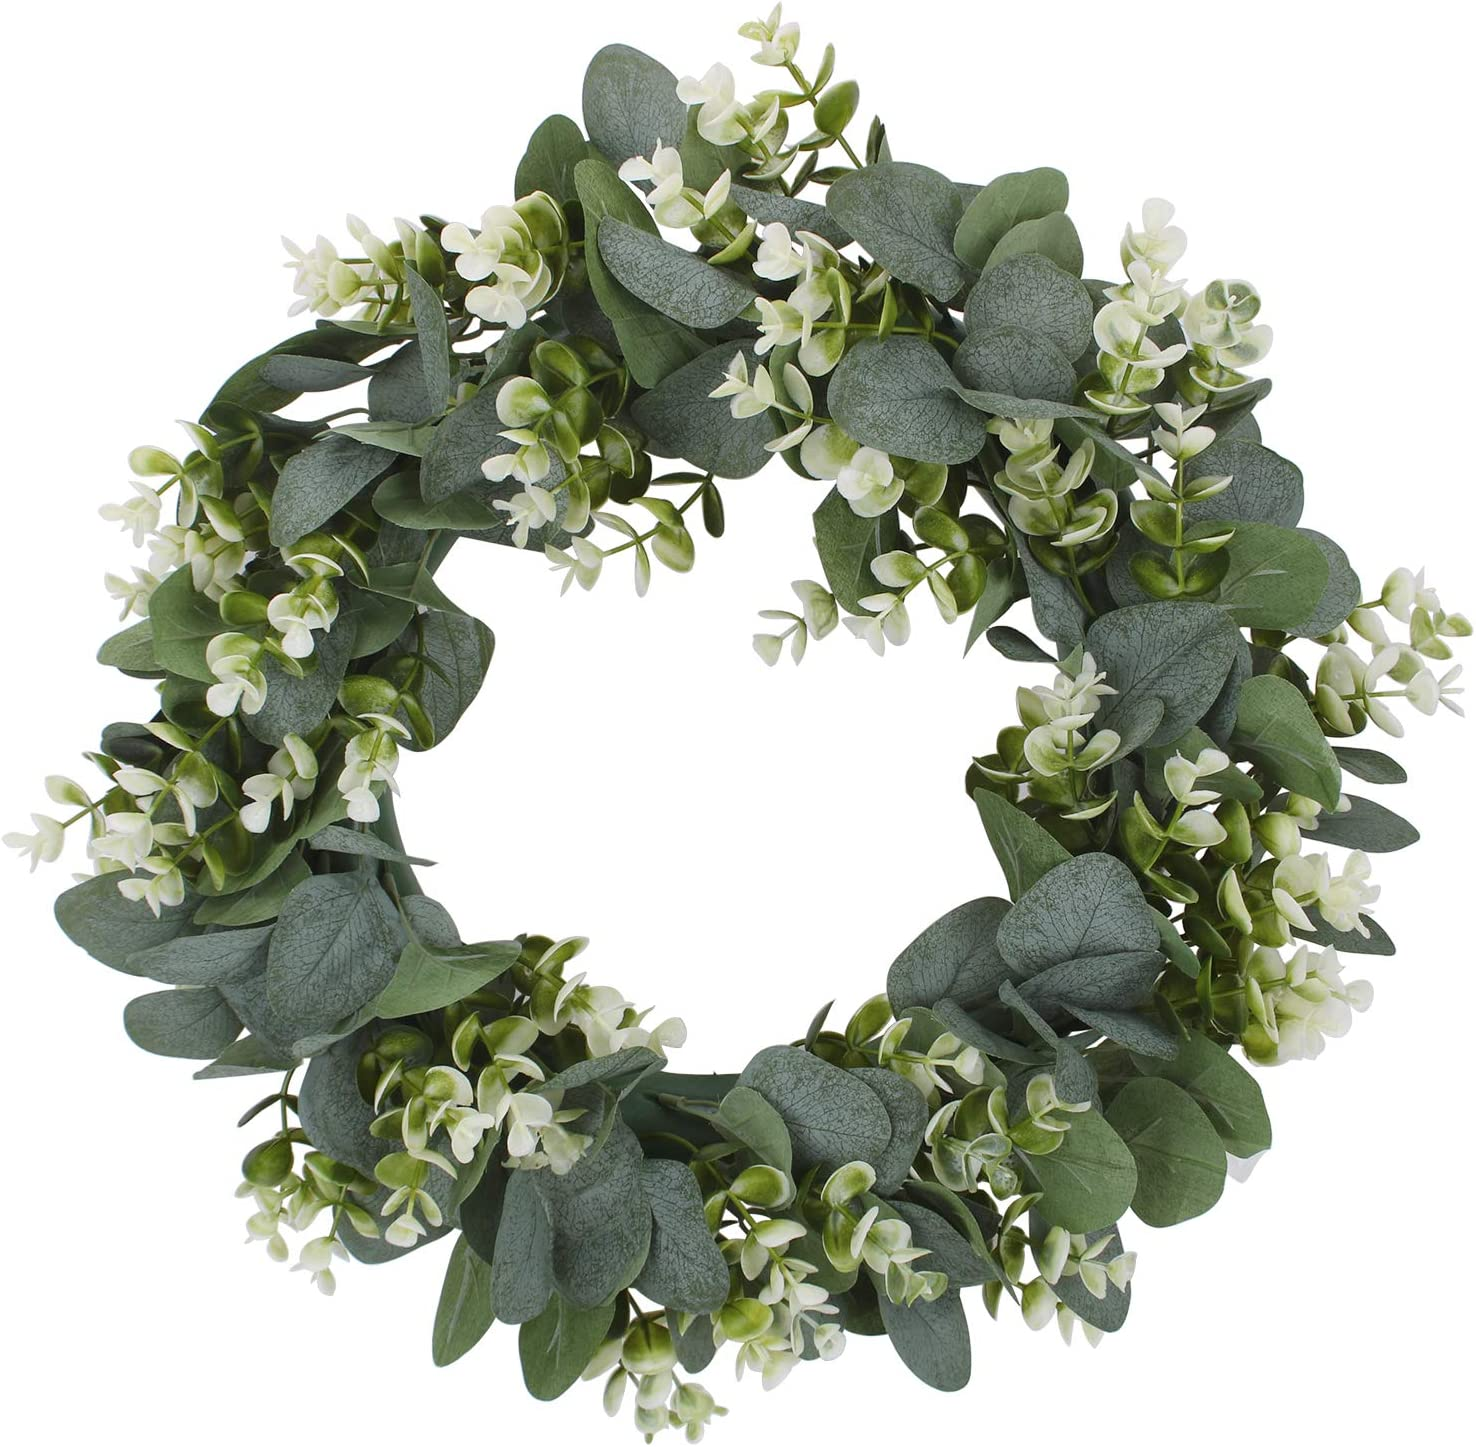 Geboor Artificial Eucalyptus Wreath with Flowers 15inch Faux Green Leaves Eucalyptus Wreath for Front Door Wall Festival Celebration Fireplace Window Party Decor